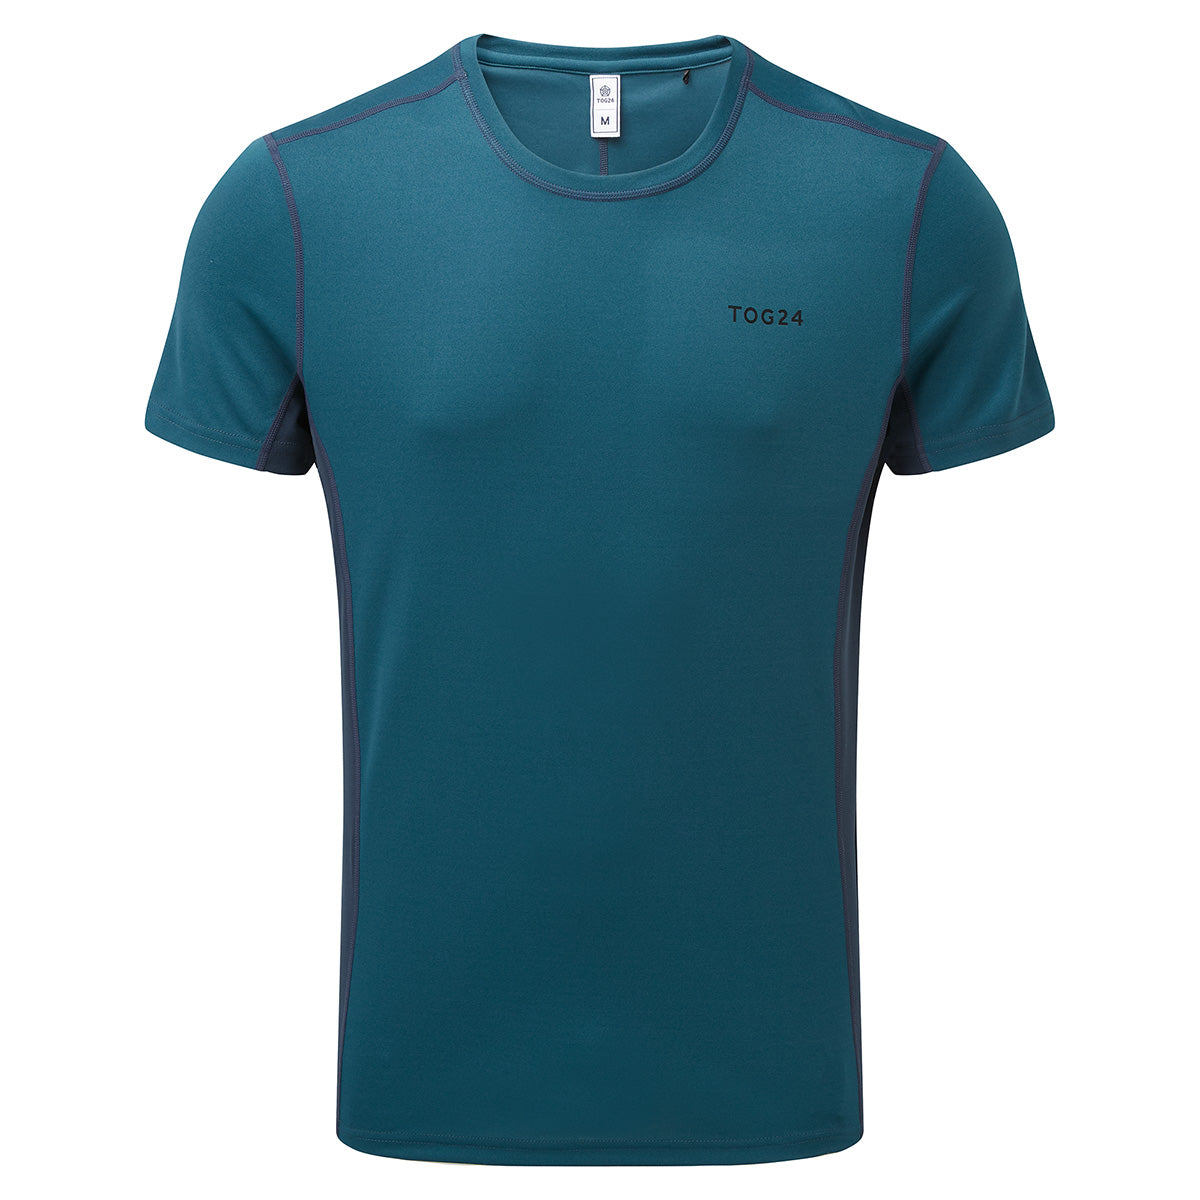 Blevin Mens Performance T-Shirt - Lagoon/Naval Blue